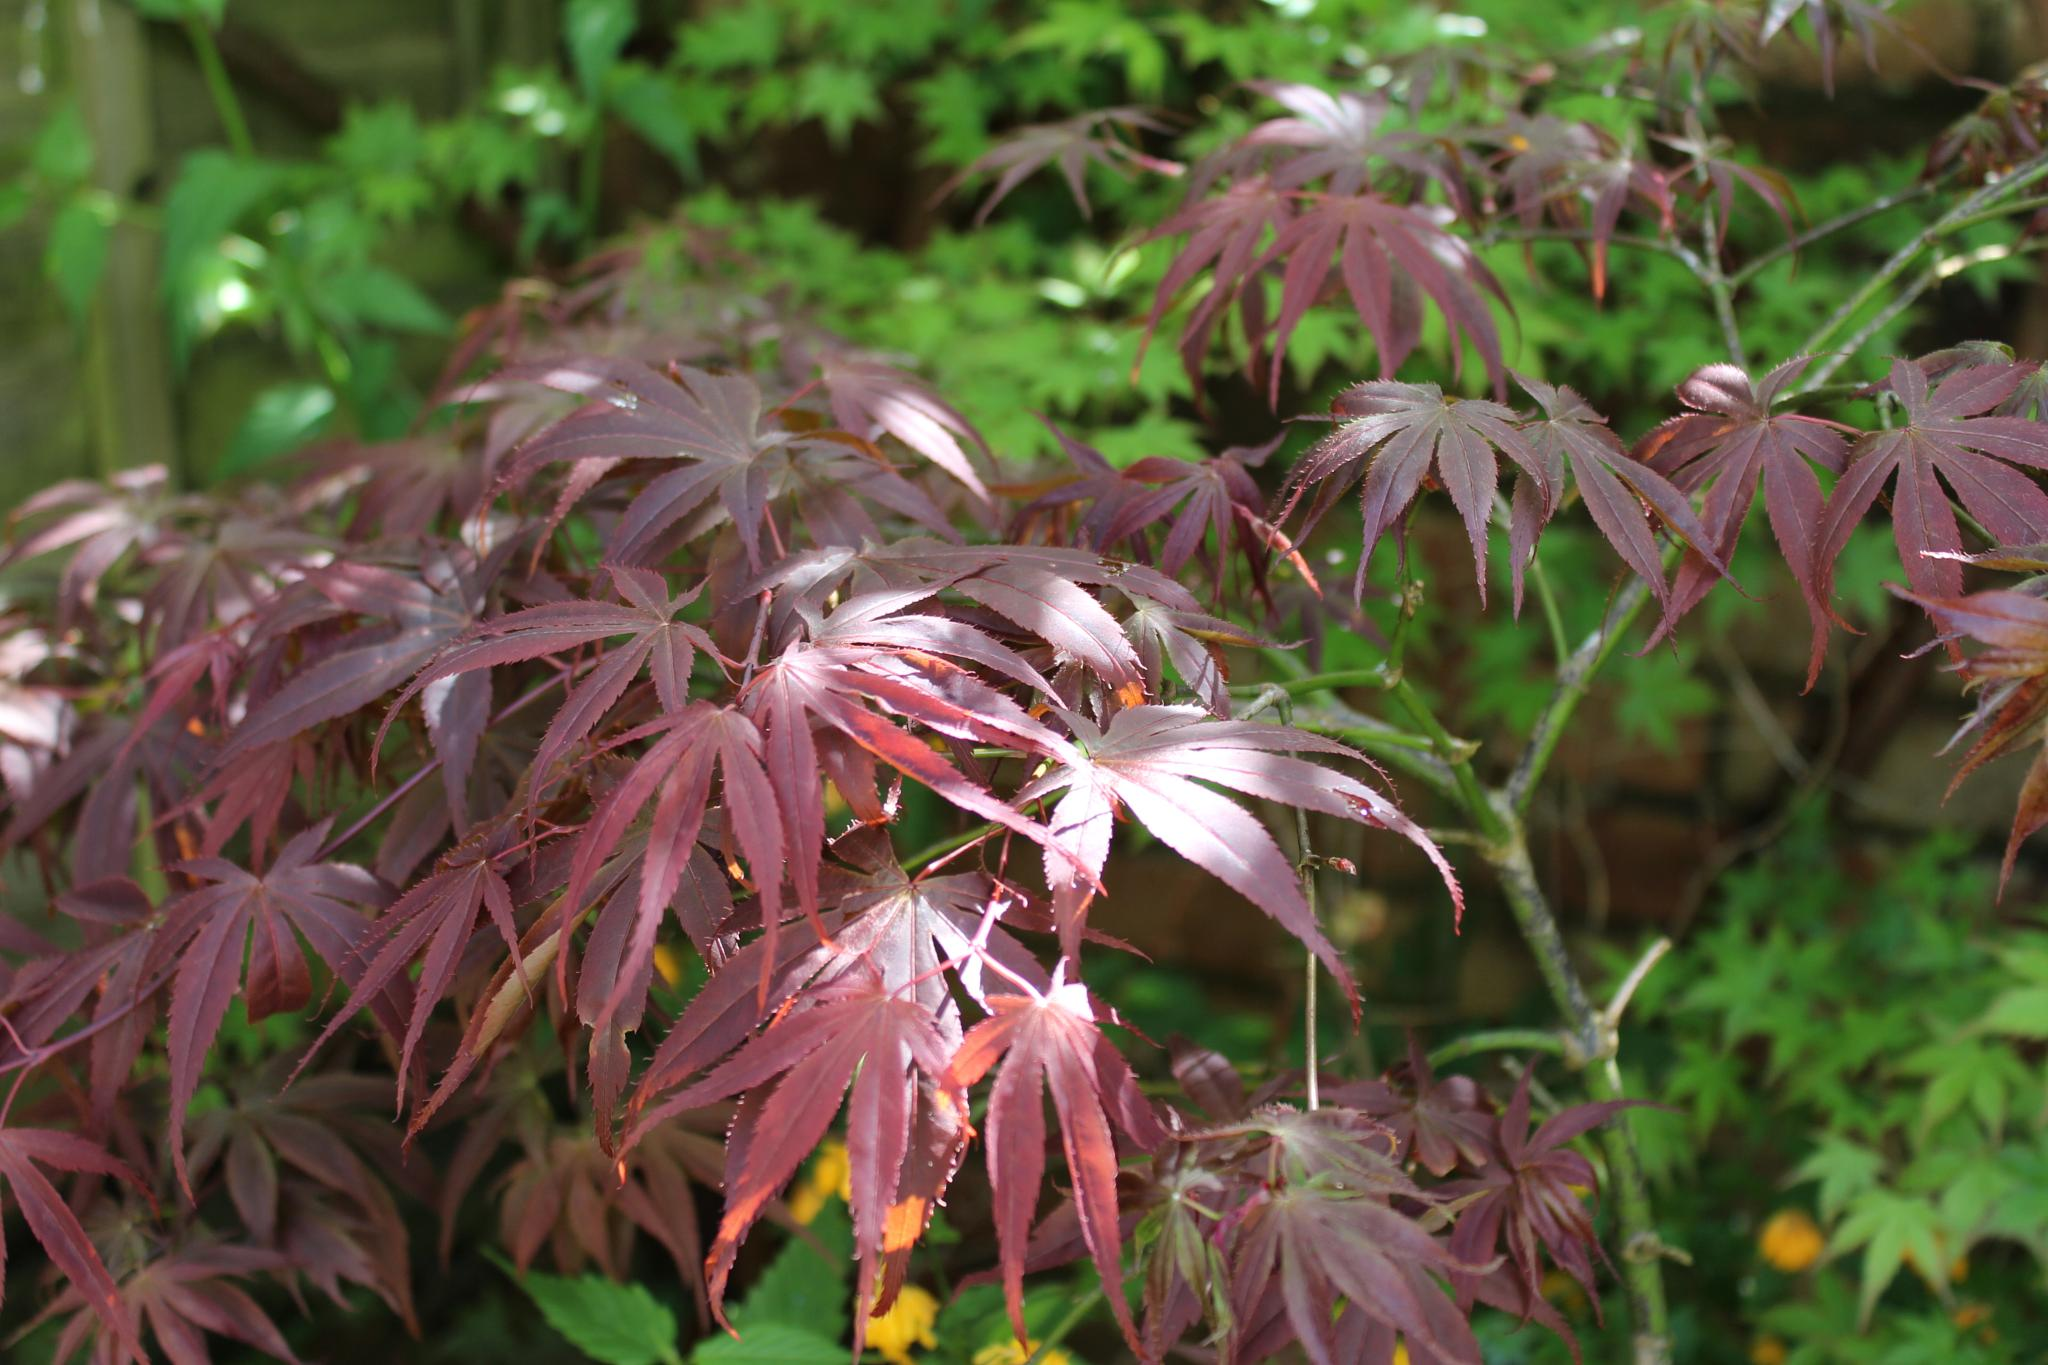 Trees: Acer Corner by drgeorgebaileybailey8